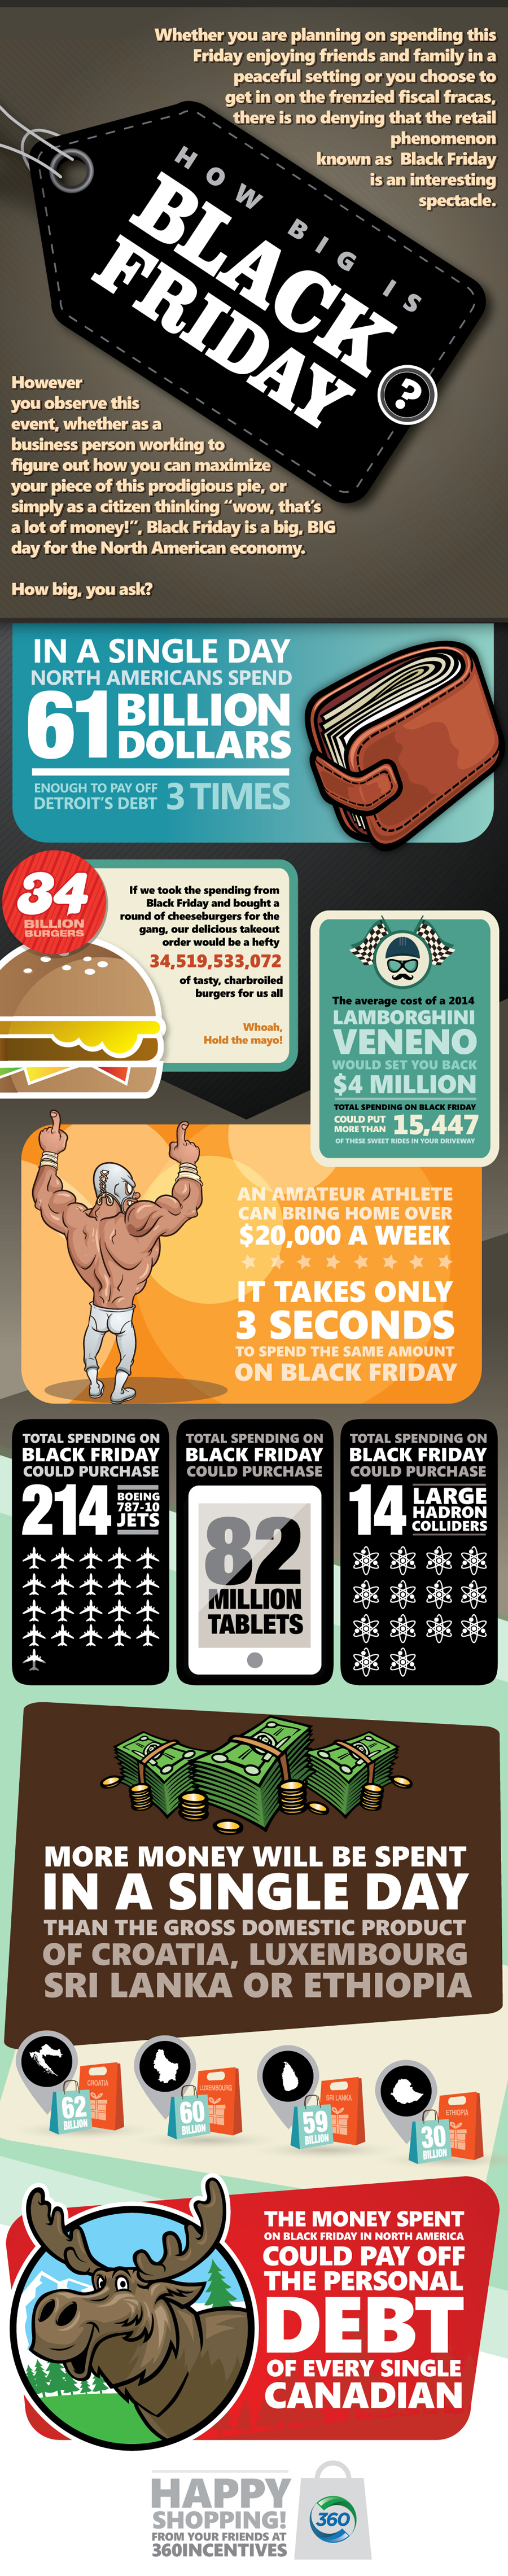 2013-11-28-blackFriday_concept03.jpg